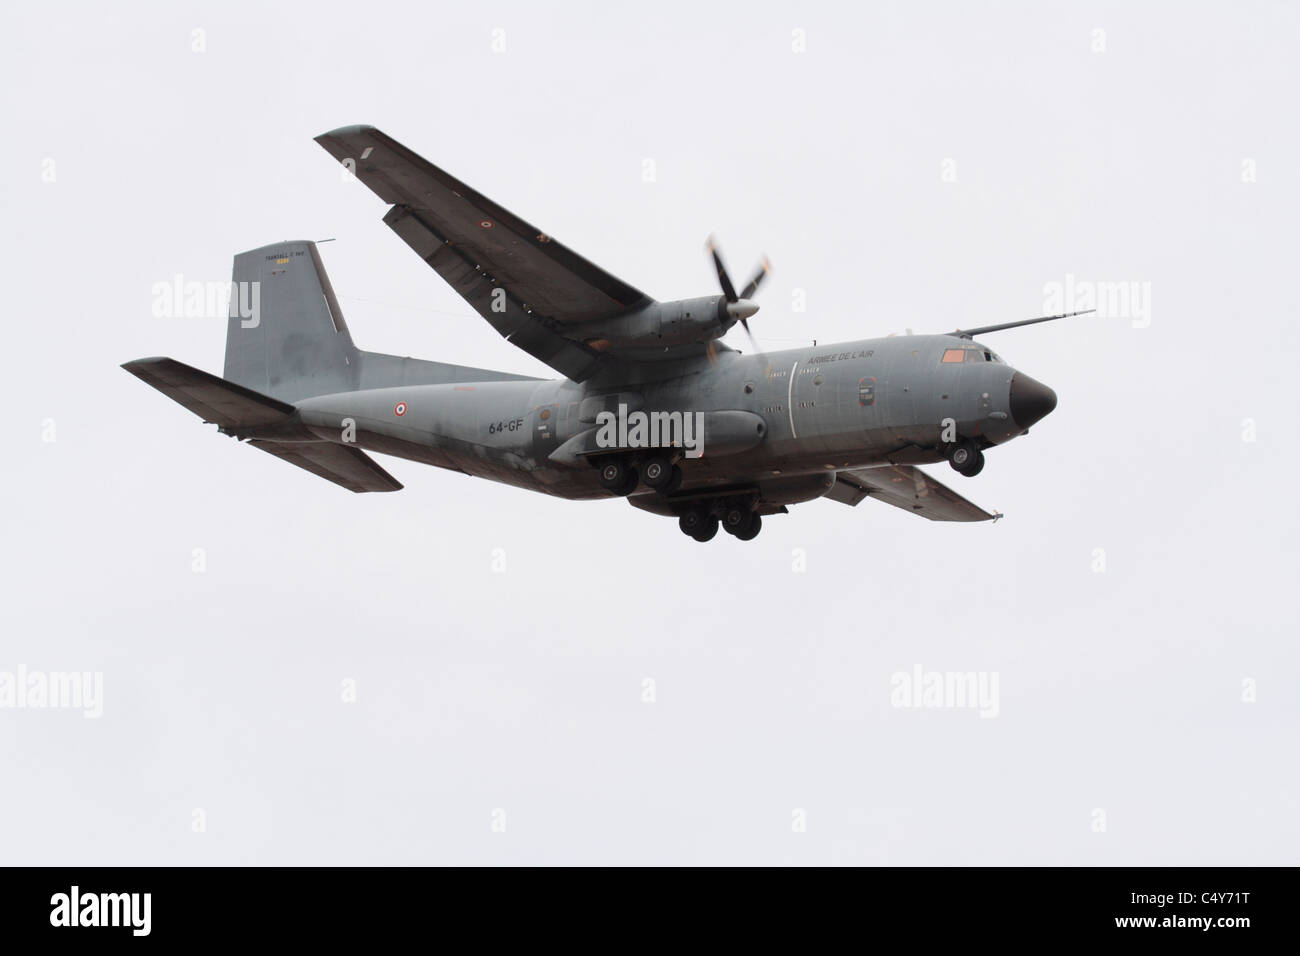 French Air Force Transall C-160 tactical airlifter - Stock Image